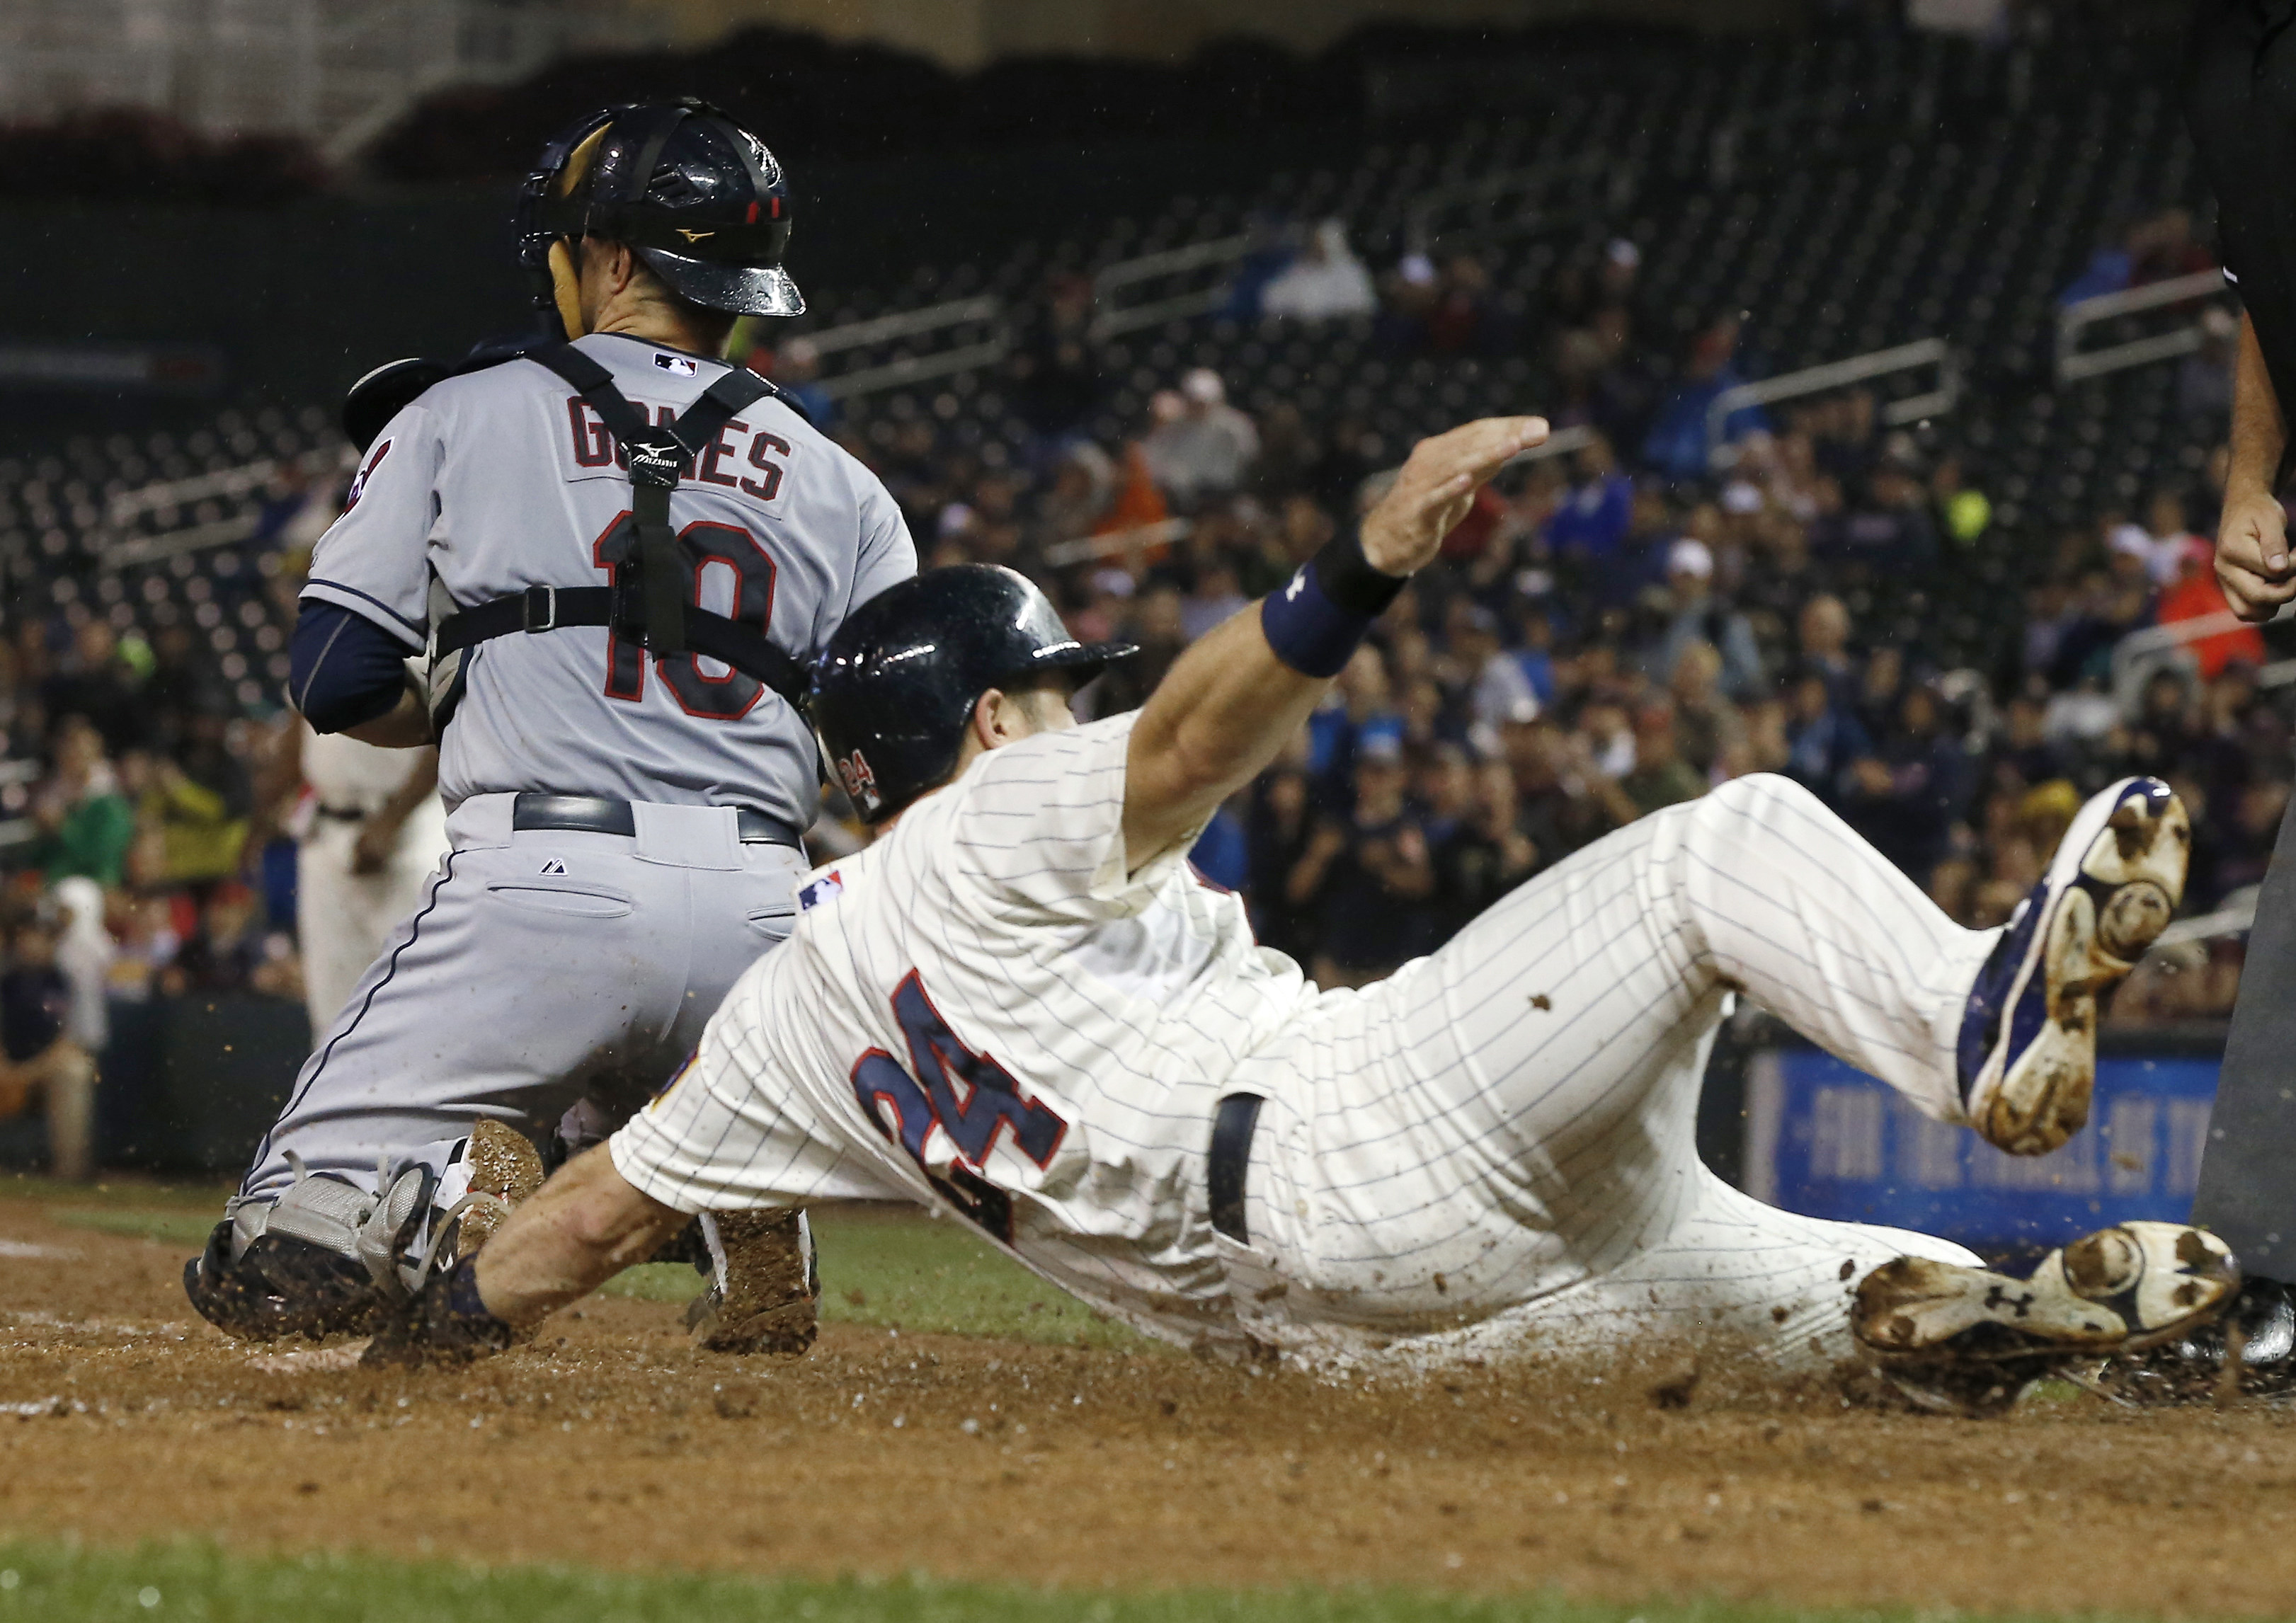 Minnesota Twins' Trevor Plouffe scores behind Cleveland Indians catcher Yan Gomes on a two-run single by Eduardo Escobar off Indians pitcher Corey Kluber in the fourth inning of a baseball game, Wednesday, Sept. 23, 2015, in Minneapolis. (AP Photo/Jim Mon